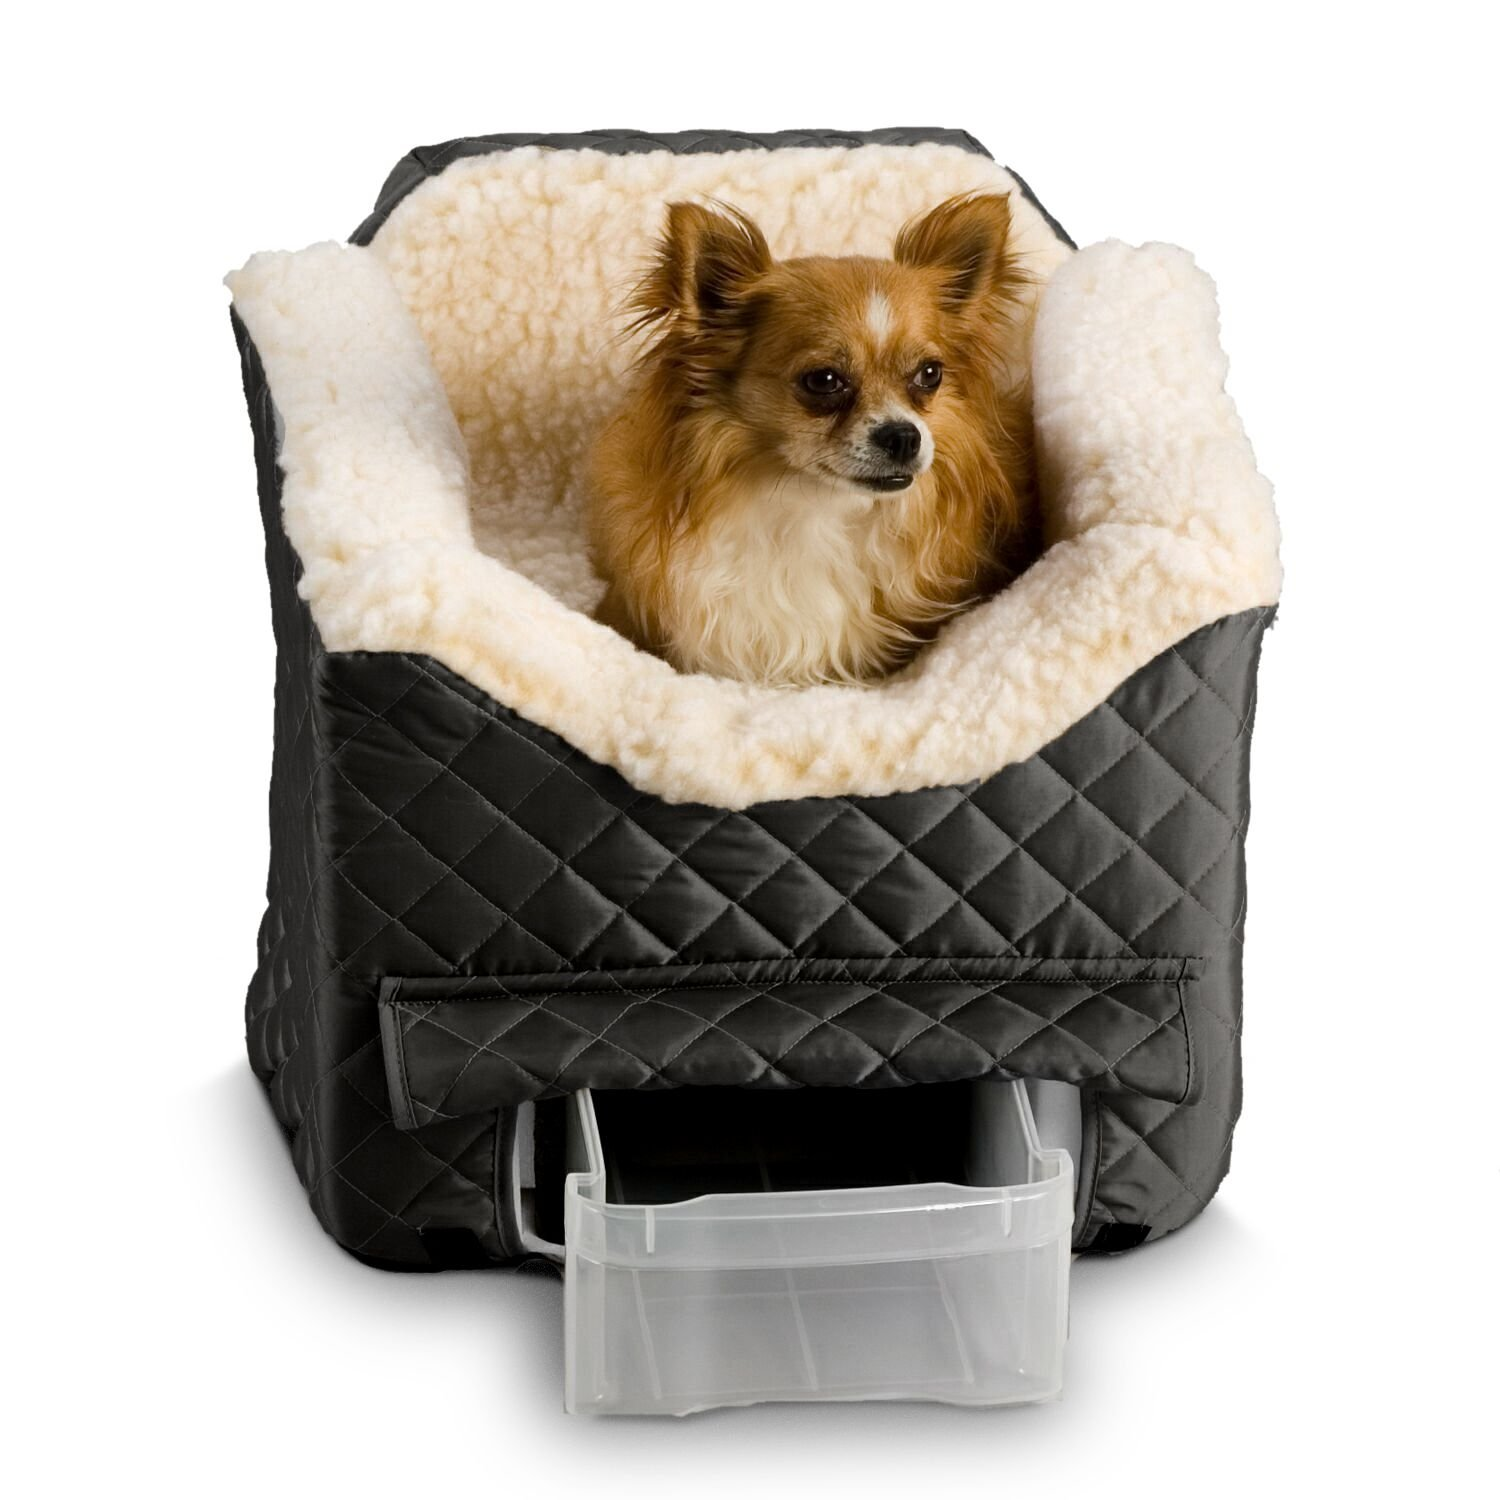 Snoozer Lookout II Pet Car Seat, Medium II, nero by Snoozer